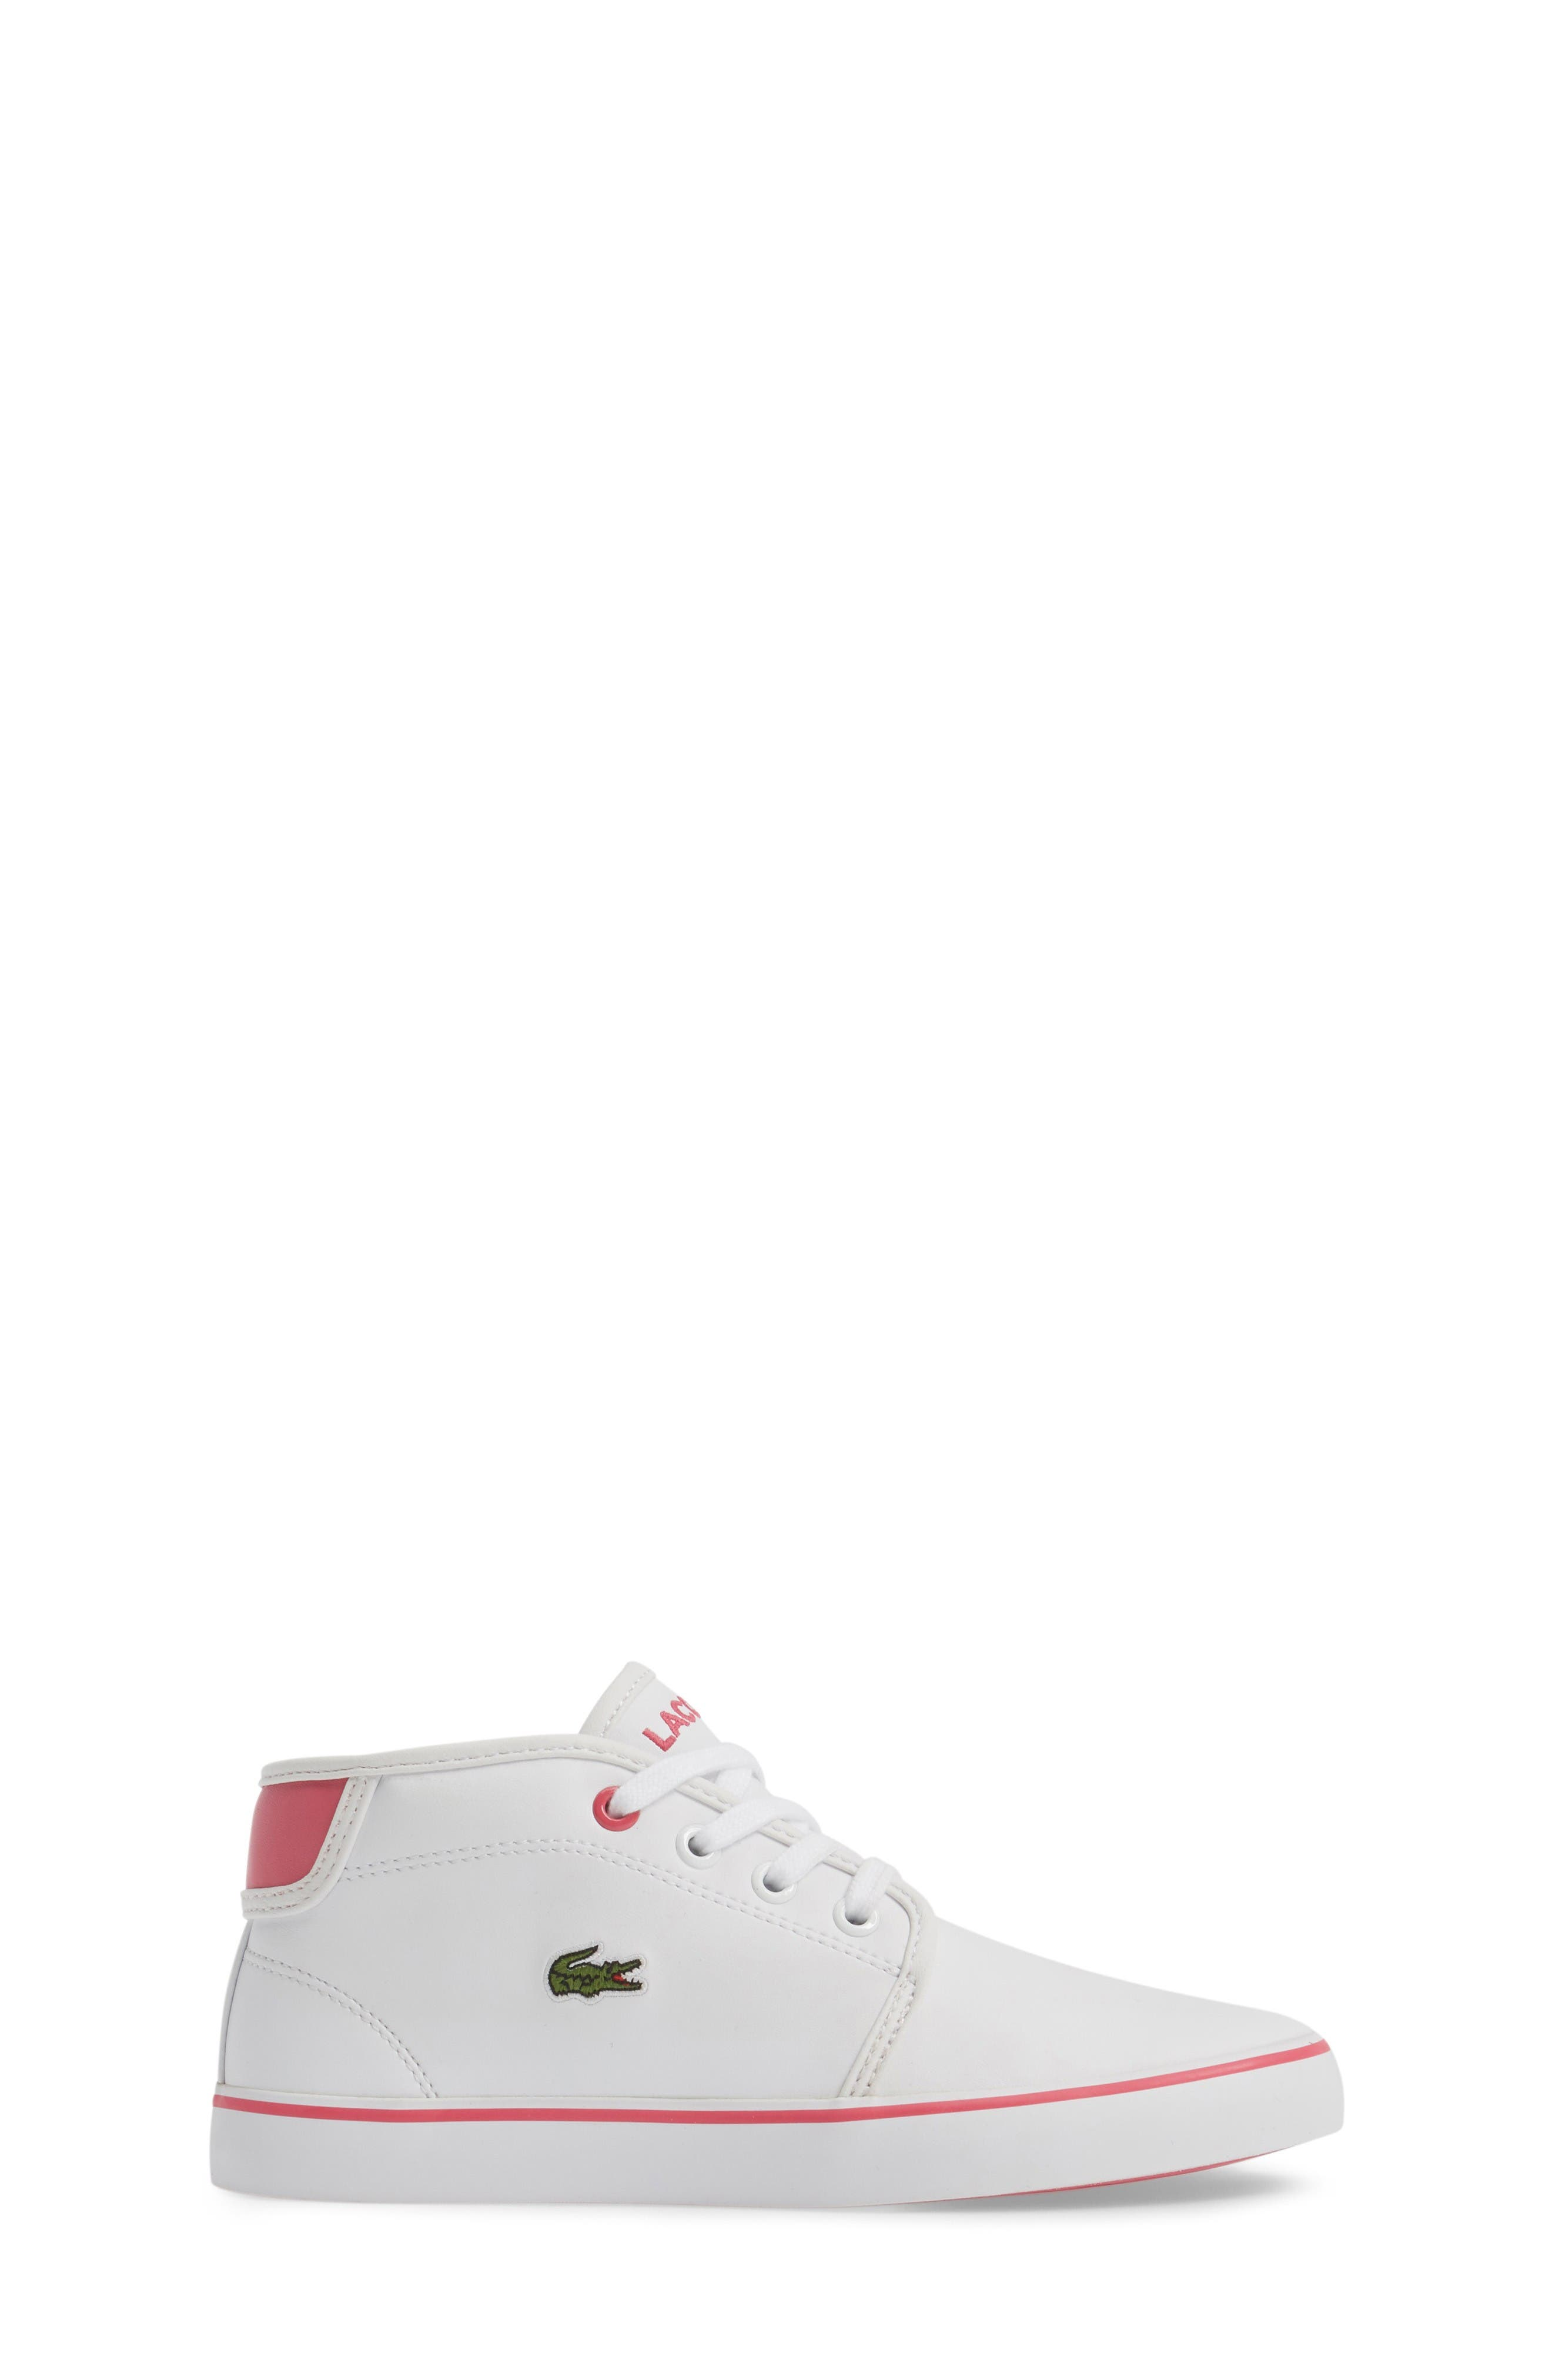 Ampthill Mid-Top Sneaker,                             Alternate thumbnail 3, color,                             White/ Pink